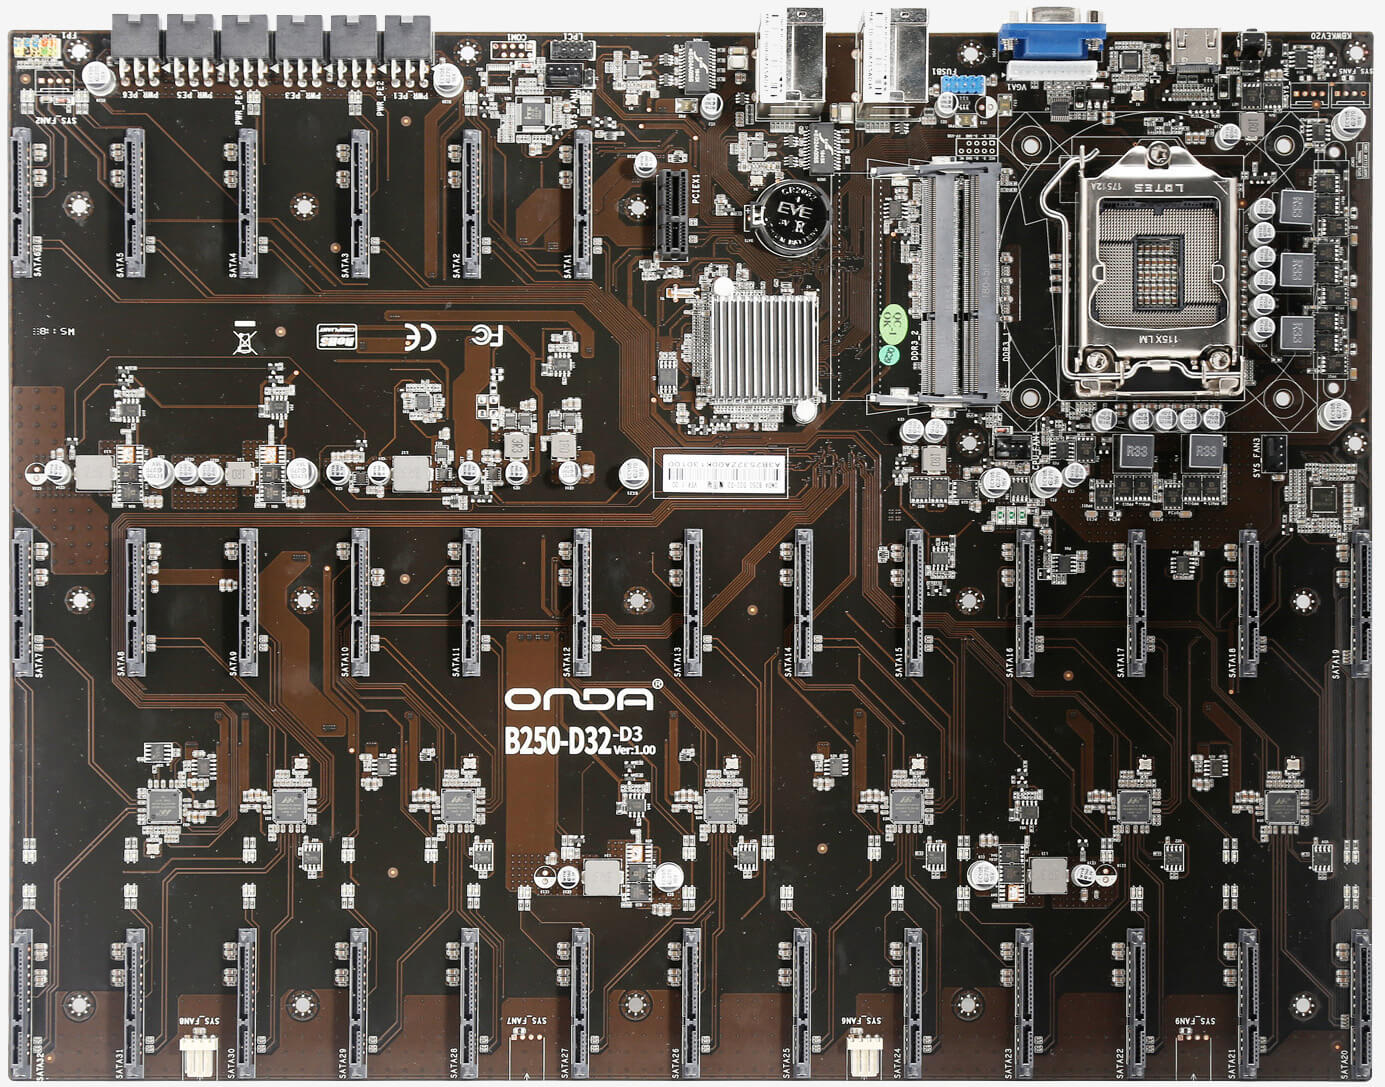 Storage Wars: this motherboard packs a staggering 32 SATA ports